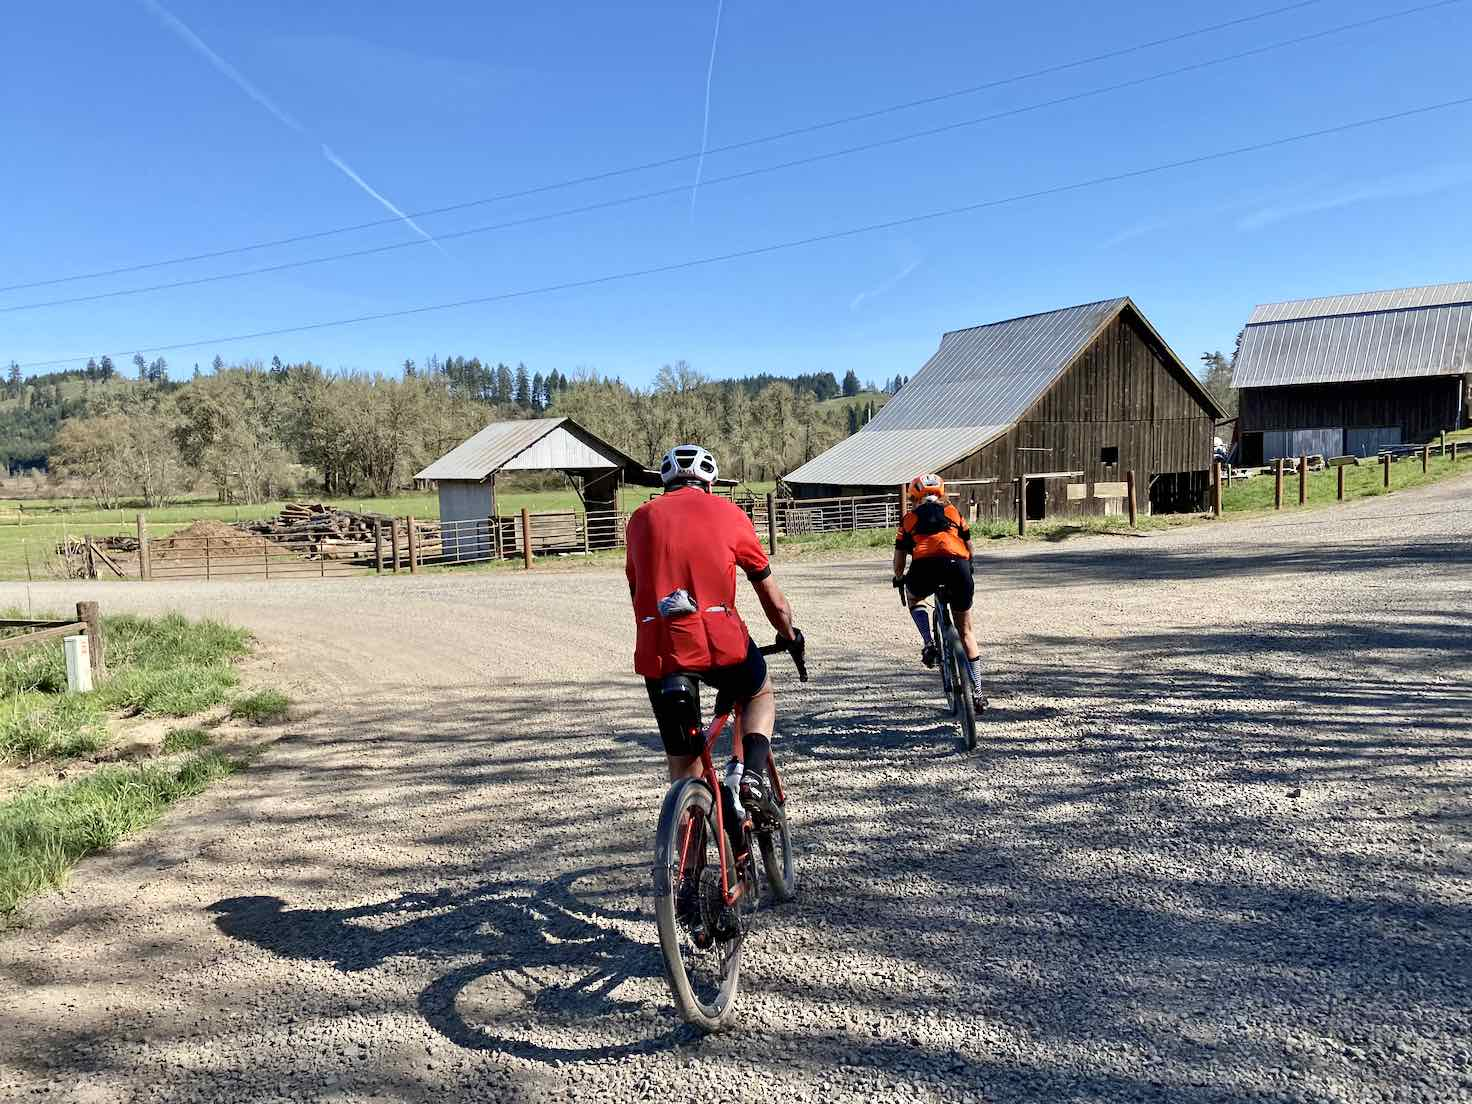 Two cyclists turning left on gravel road with old wooden barn in the distance.